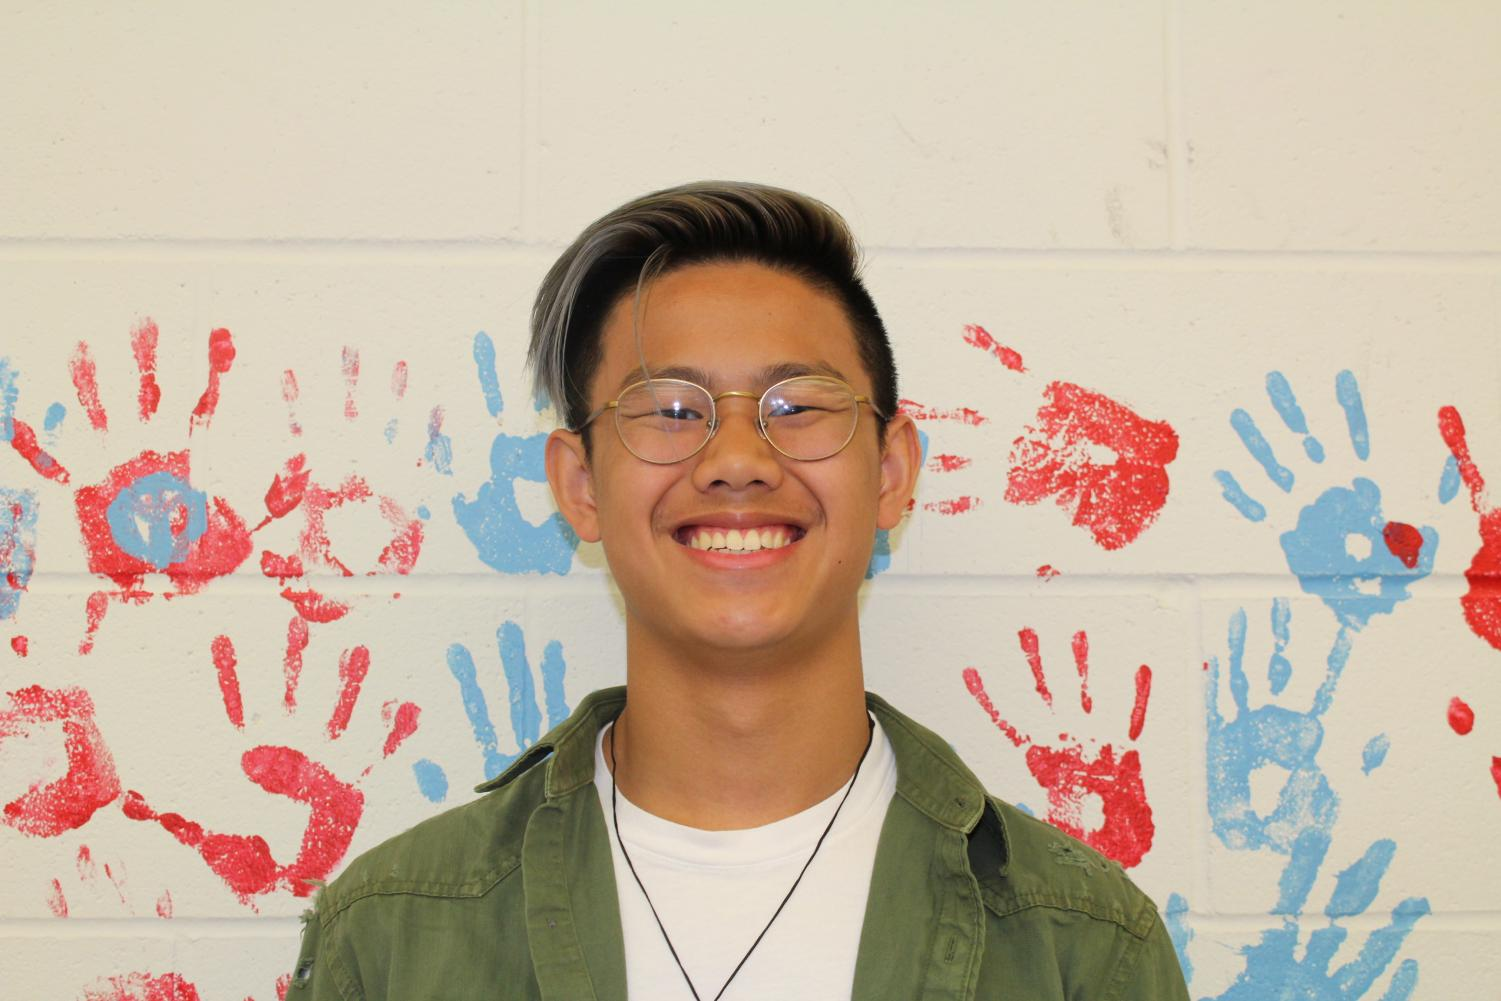 Austin Peng hangs out by the hand wall. Peng discussed his views on the walkout that occurred.